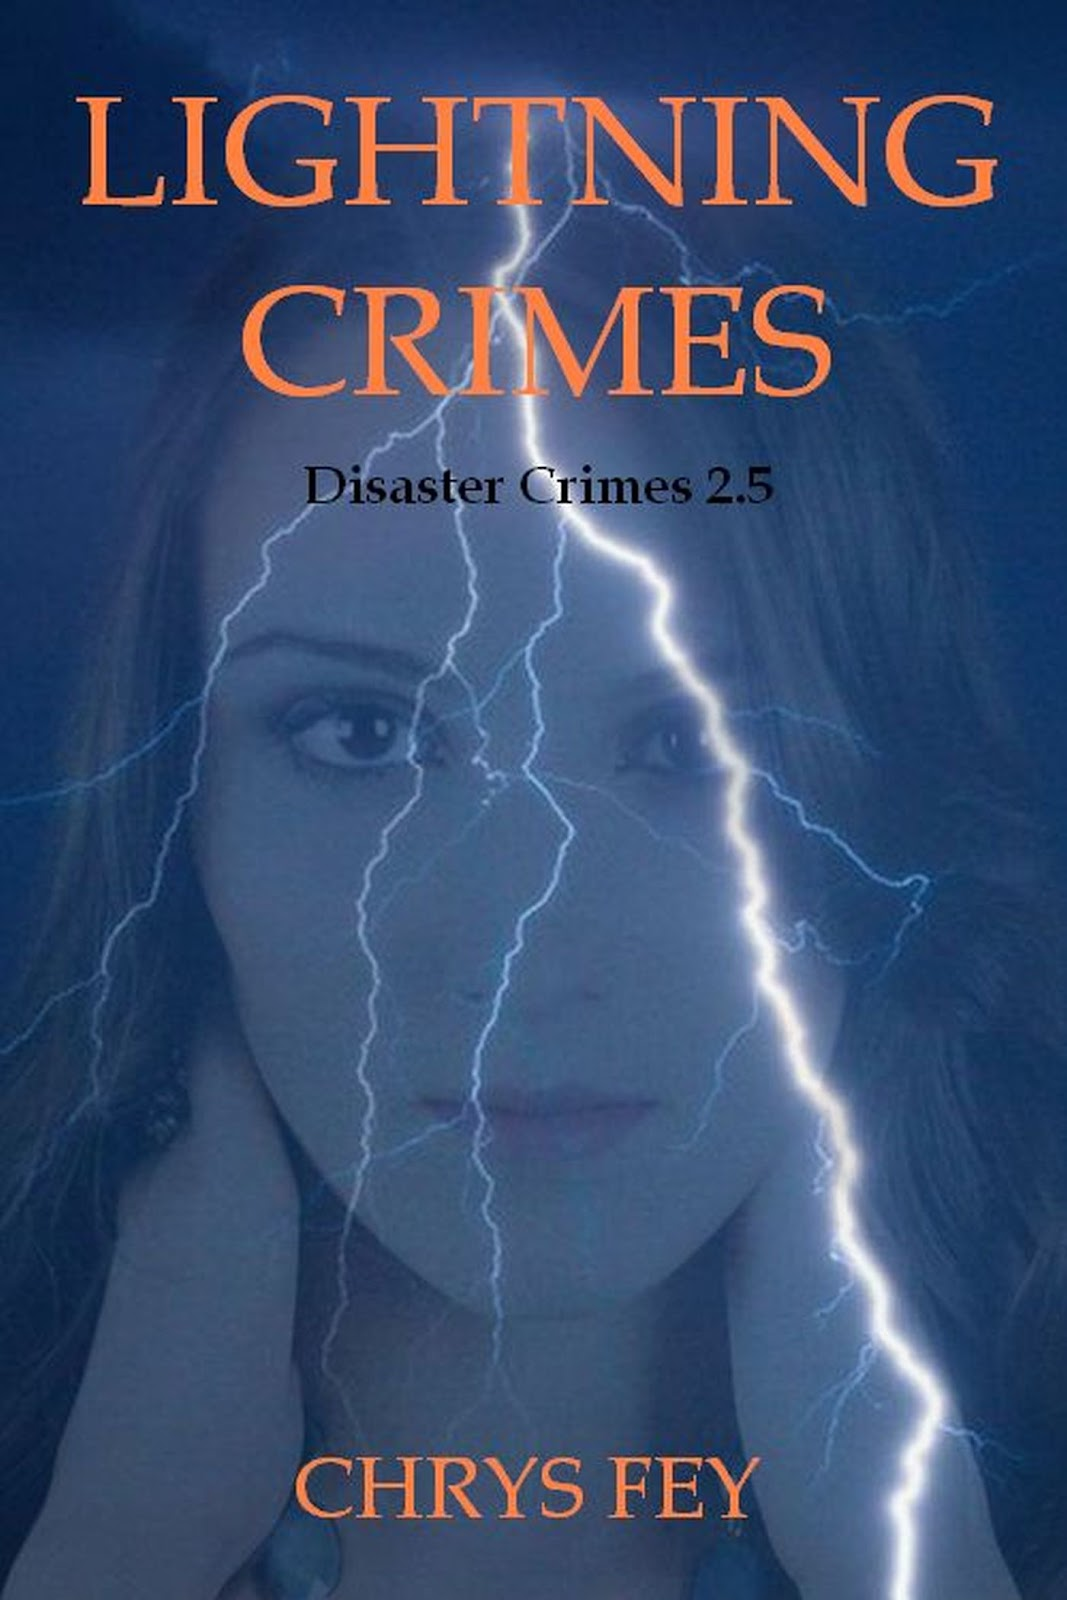 Lightening Crimes.jpeg